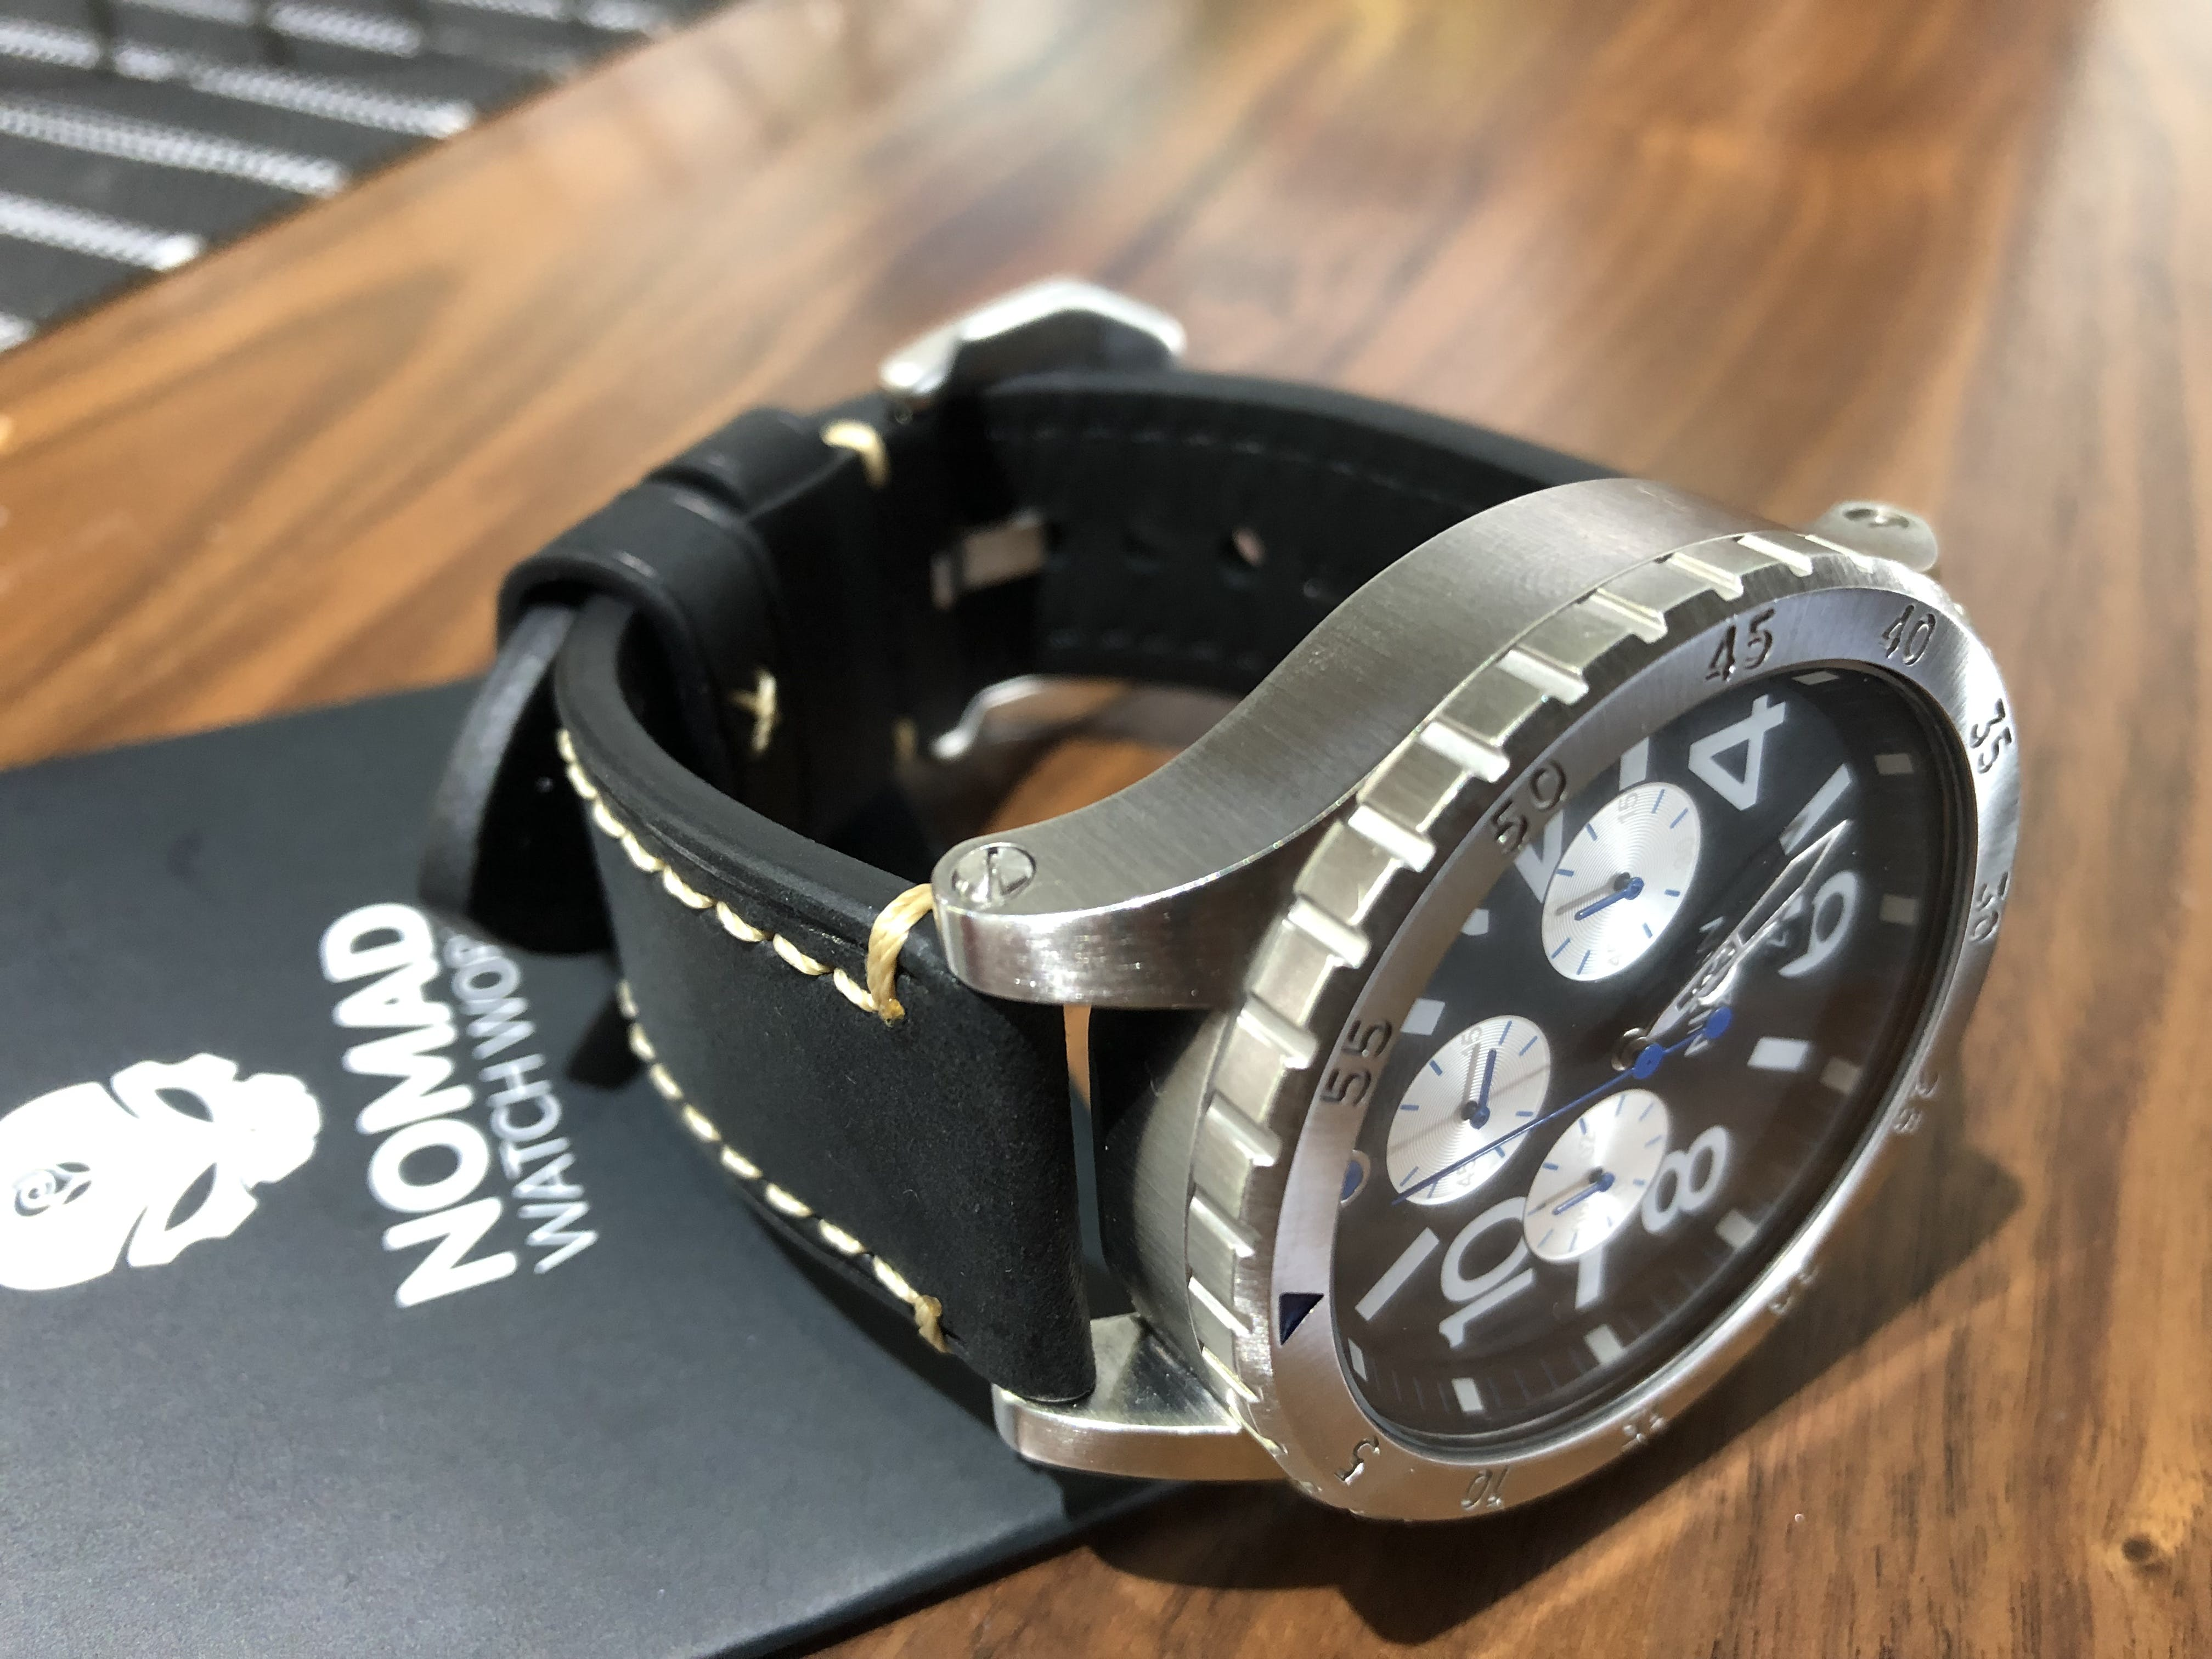 3bd9b8f3c This vintage leather strap are good combination with my Nixon watch. Looks  and feel good.